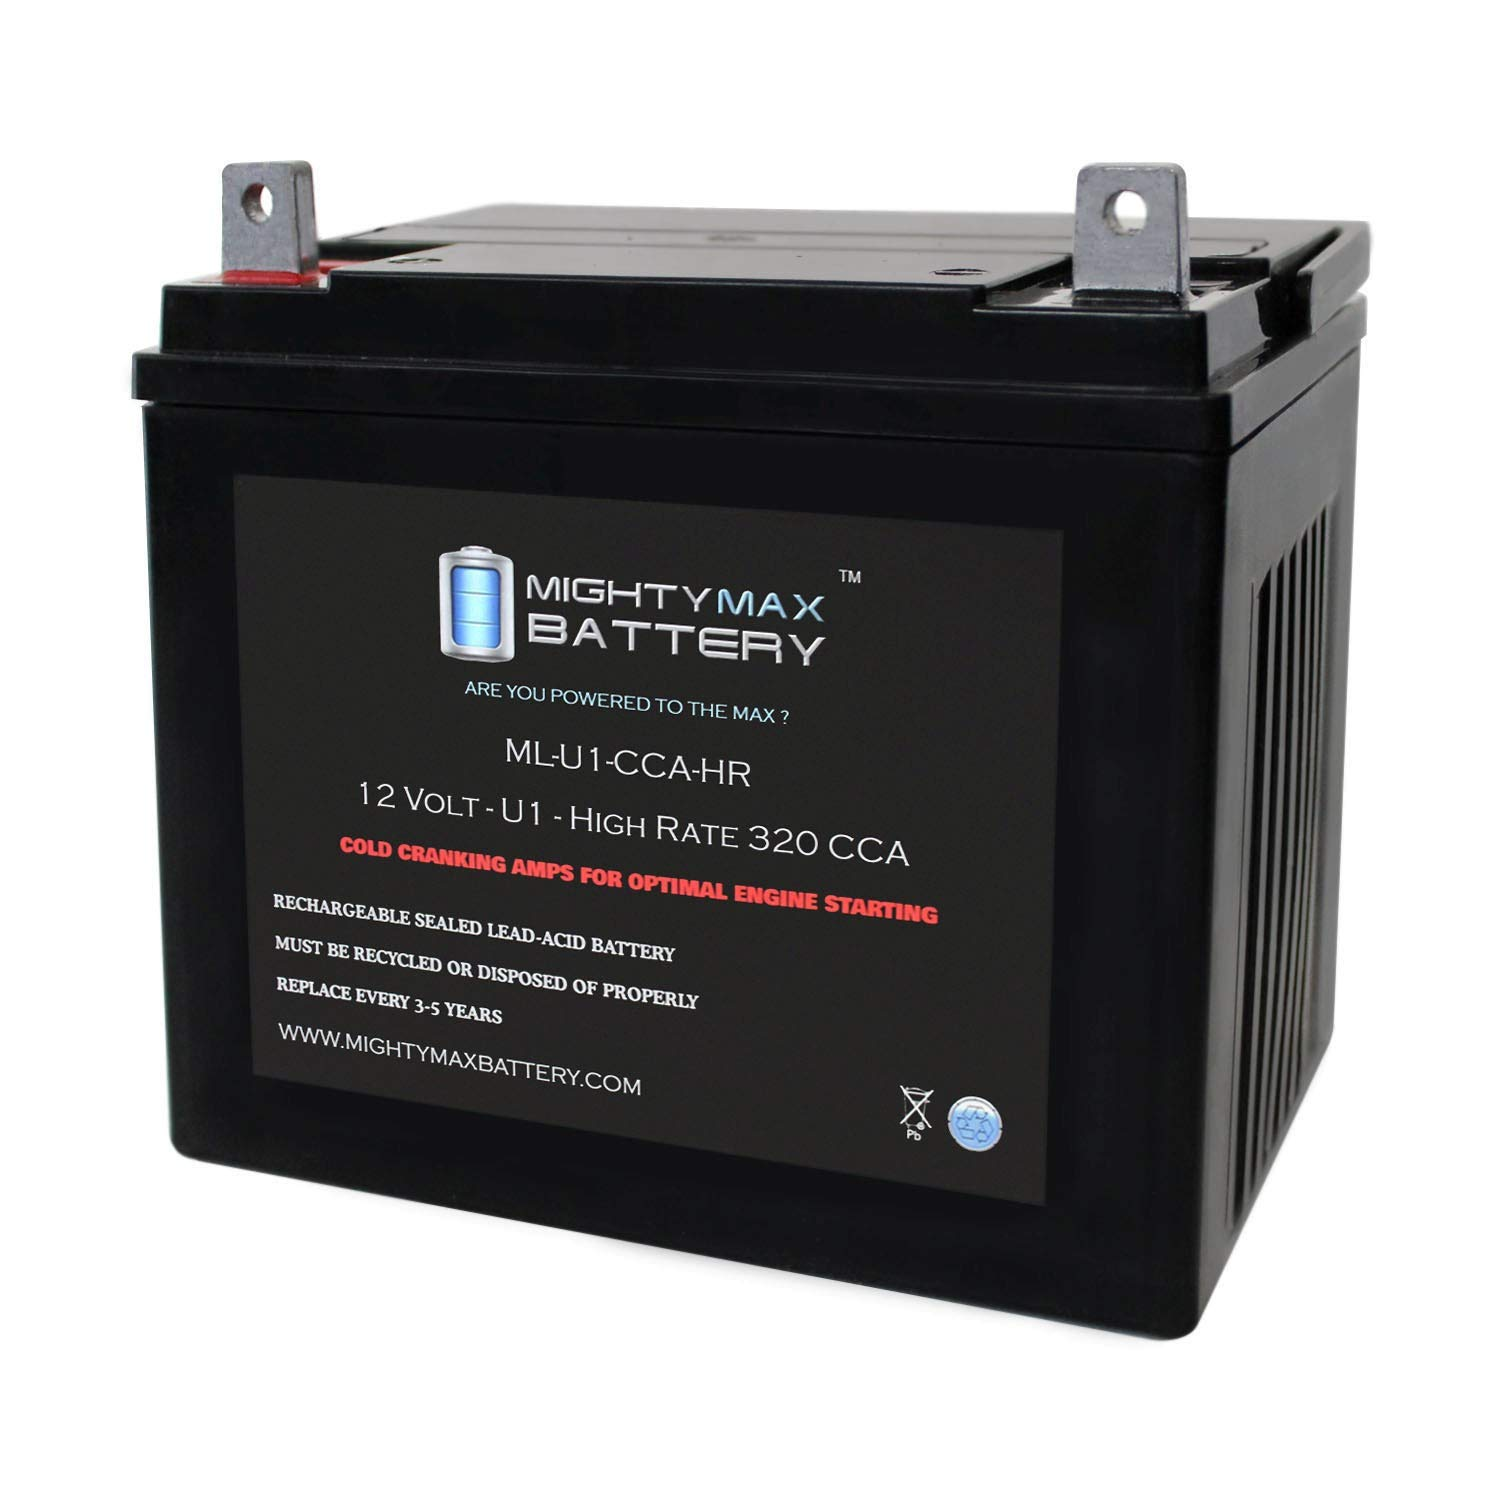 Mighty Max Battery ML-U1-CCAHR 12V 320CCA Battery for Craftsman 25780 Lawn Tractor Mower Brand Product by Mighty Max Battery (Image #1)